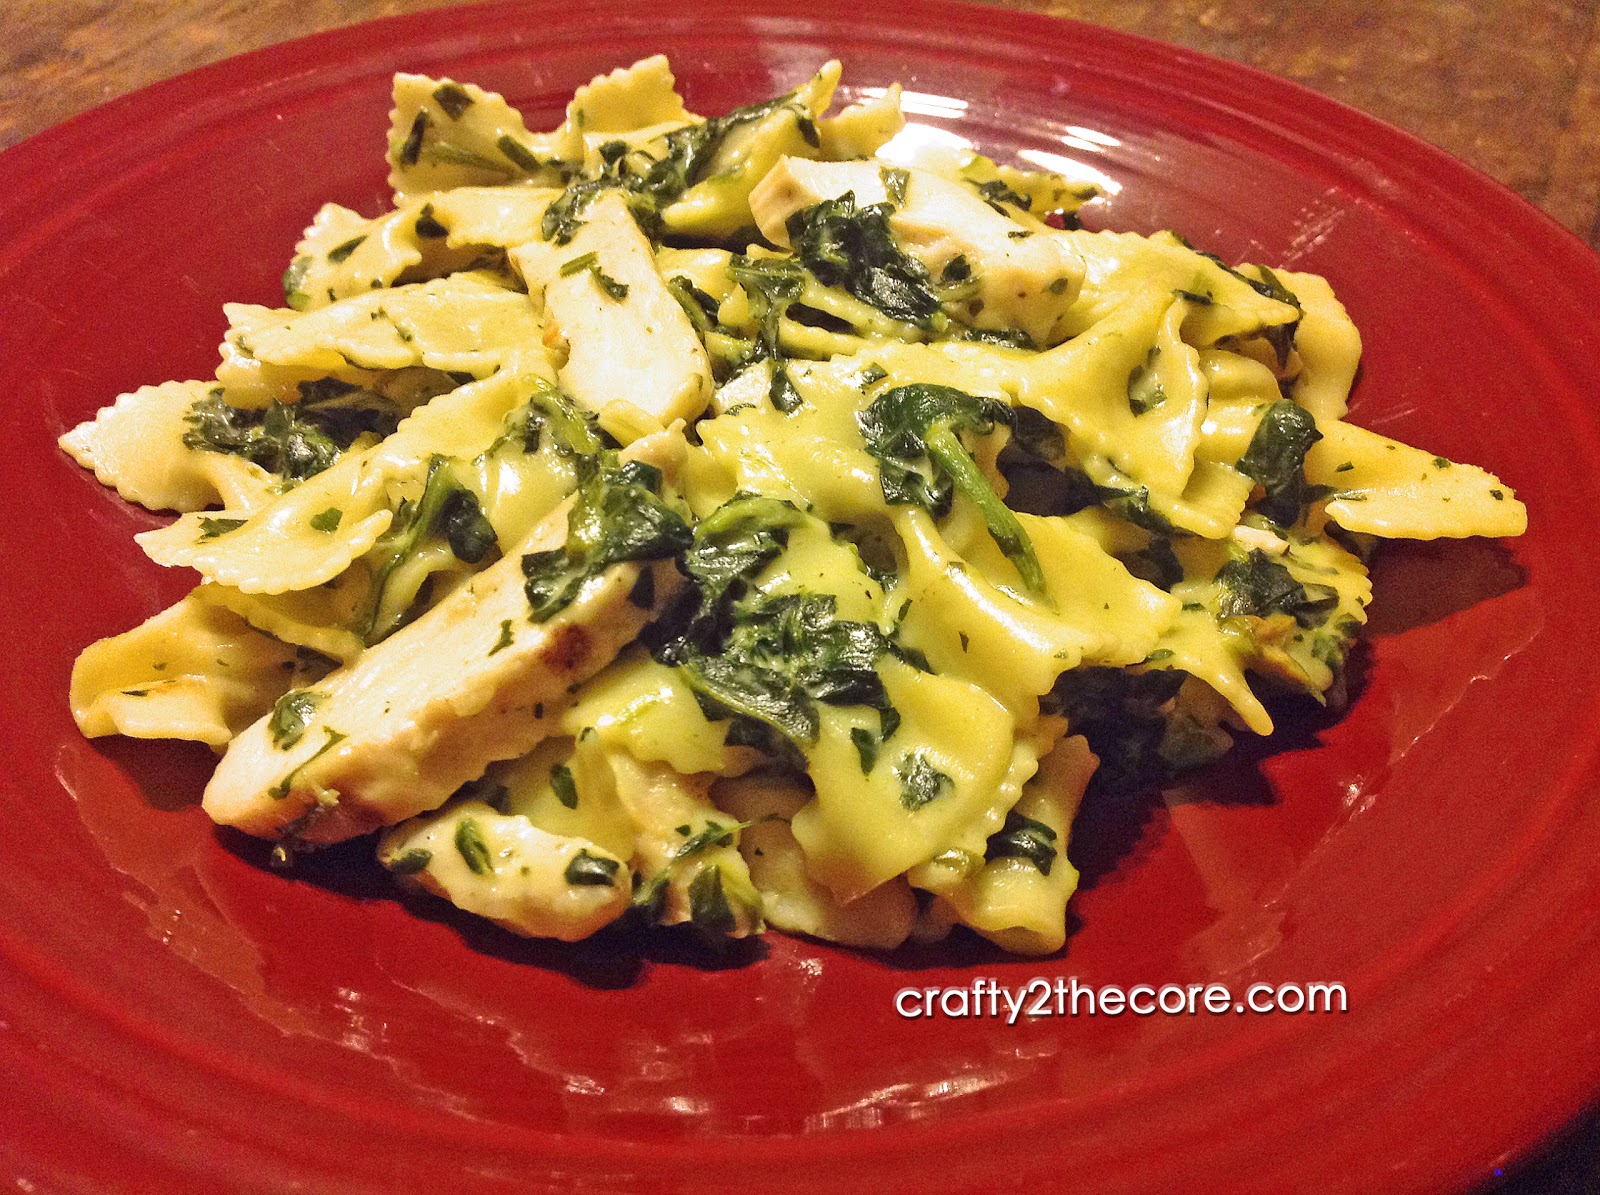 ~Grilled Chicken Florentine Pasta~ Chicken and spinach in a rich creamy parmesan cheese sauce with bow tie pasta